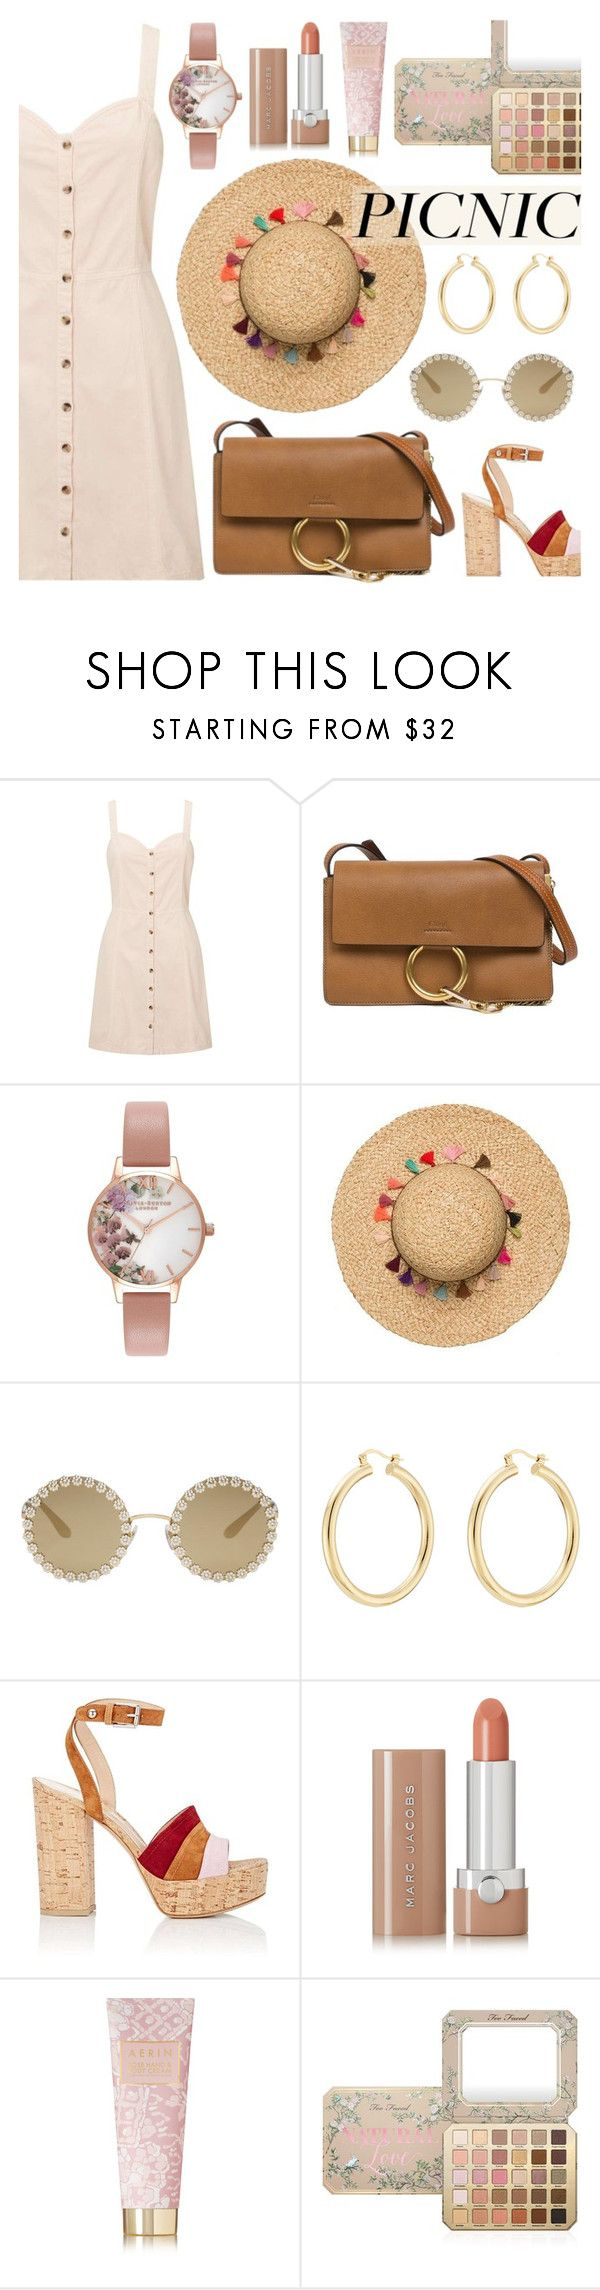 Picnic in The Park by dora04 on Polyvore featuring Miss Selfridge, Gianvito Rossi, Chloé, Olivia Burton, Isabel Marant, Dolce&Gabbana, Too Faced Cosmetics, Marc Jacobs, AERIN and picnic